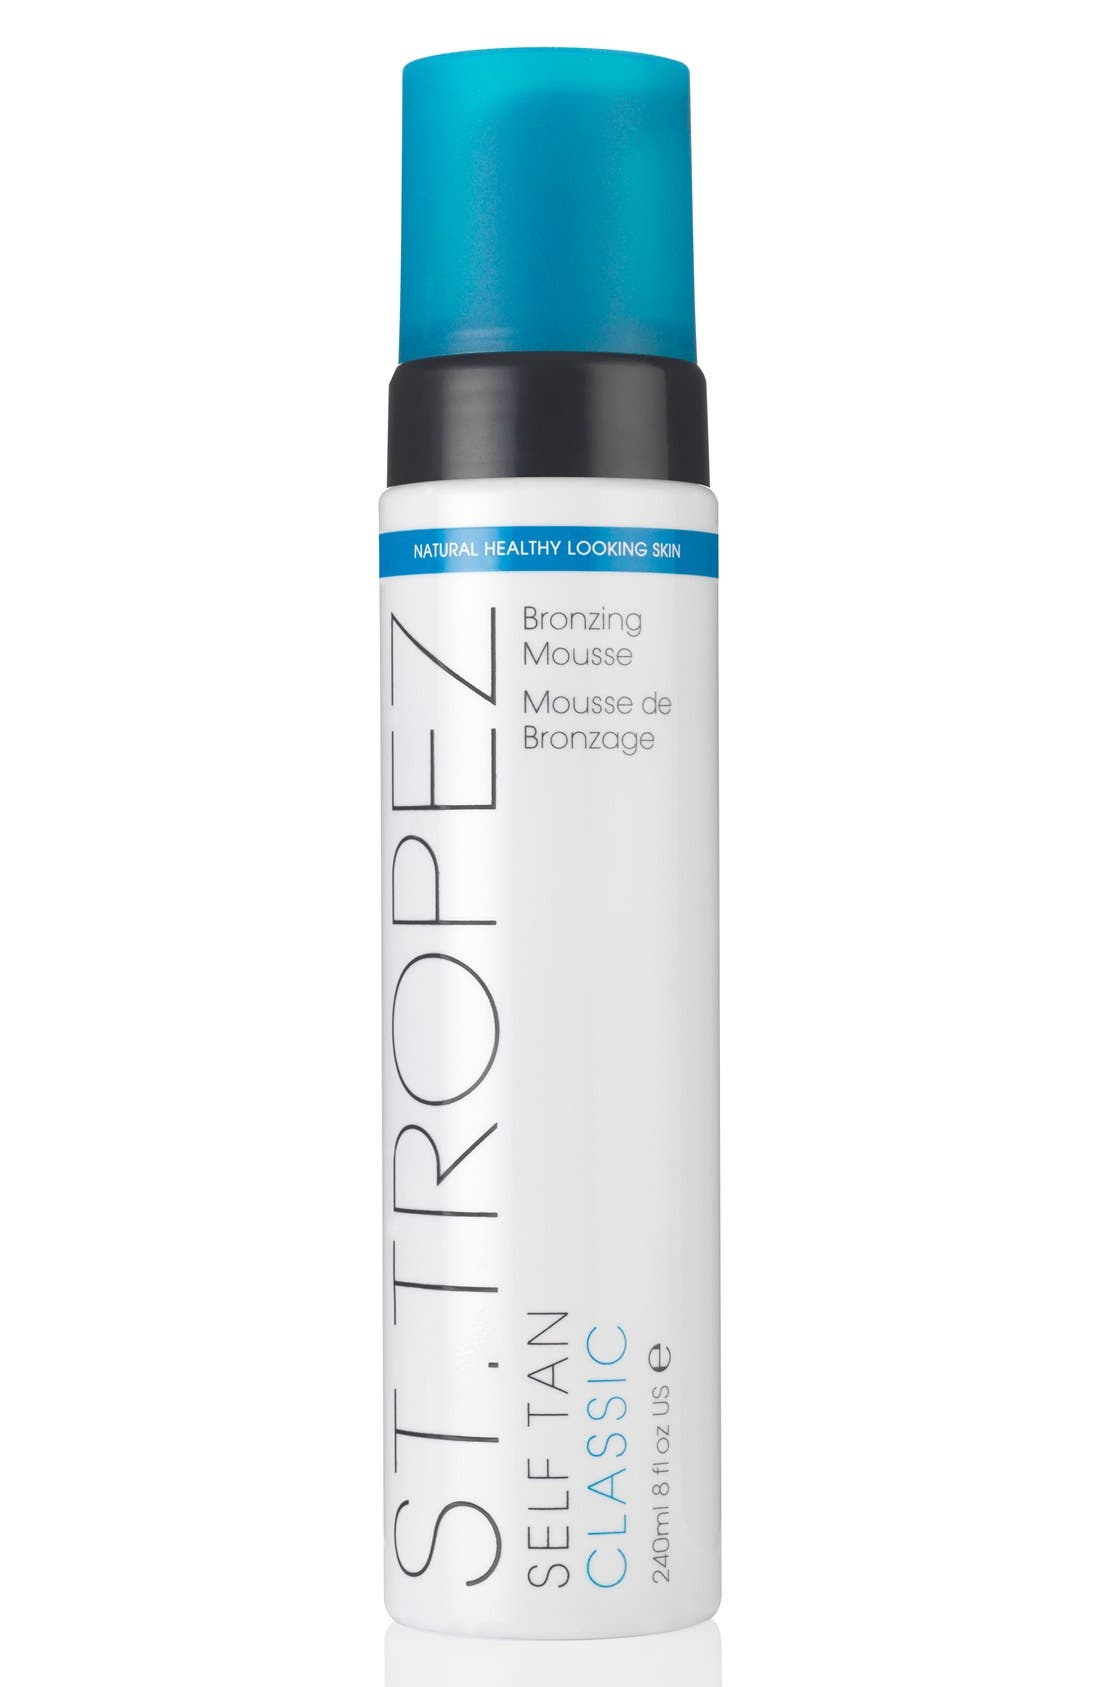 ST. TROPEZ, 'Self Tan' Classic Bronzing Mousse, Main thumbnail 1, color, NO COLOR